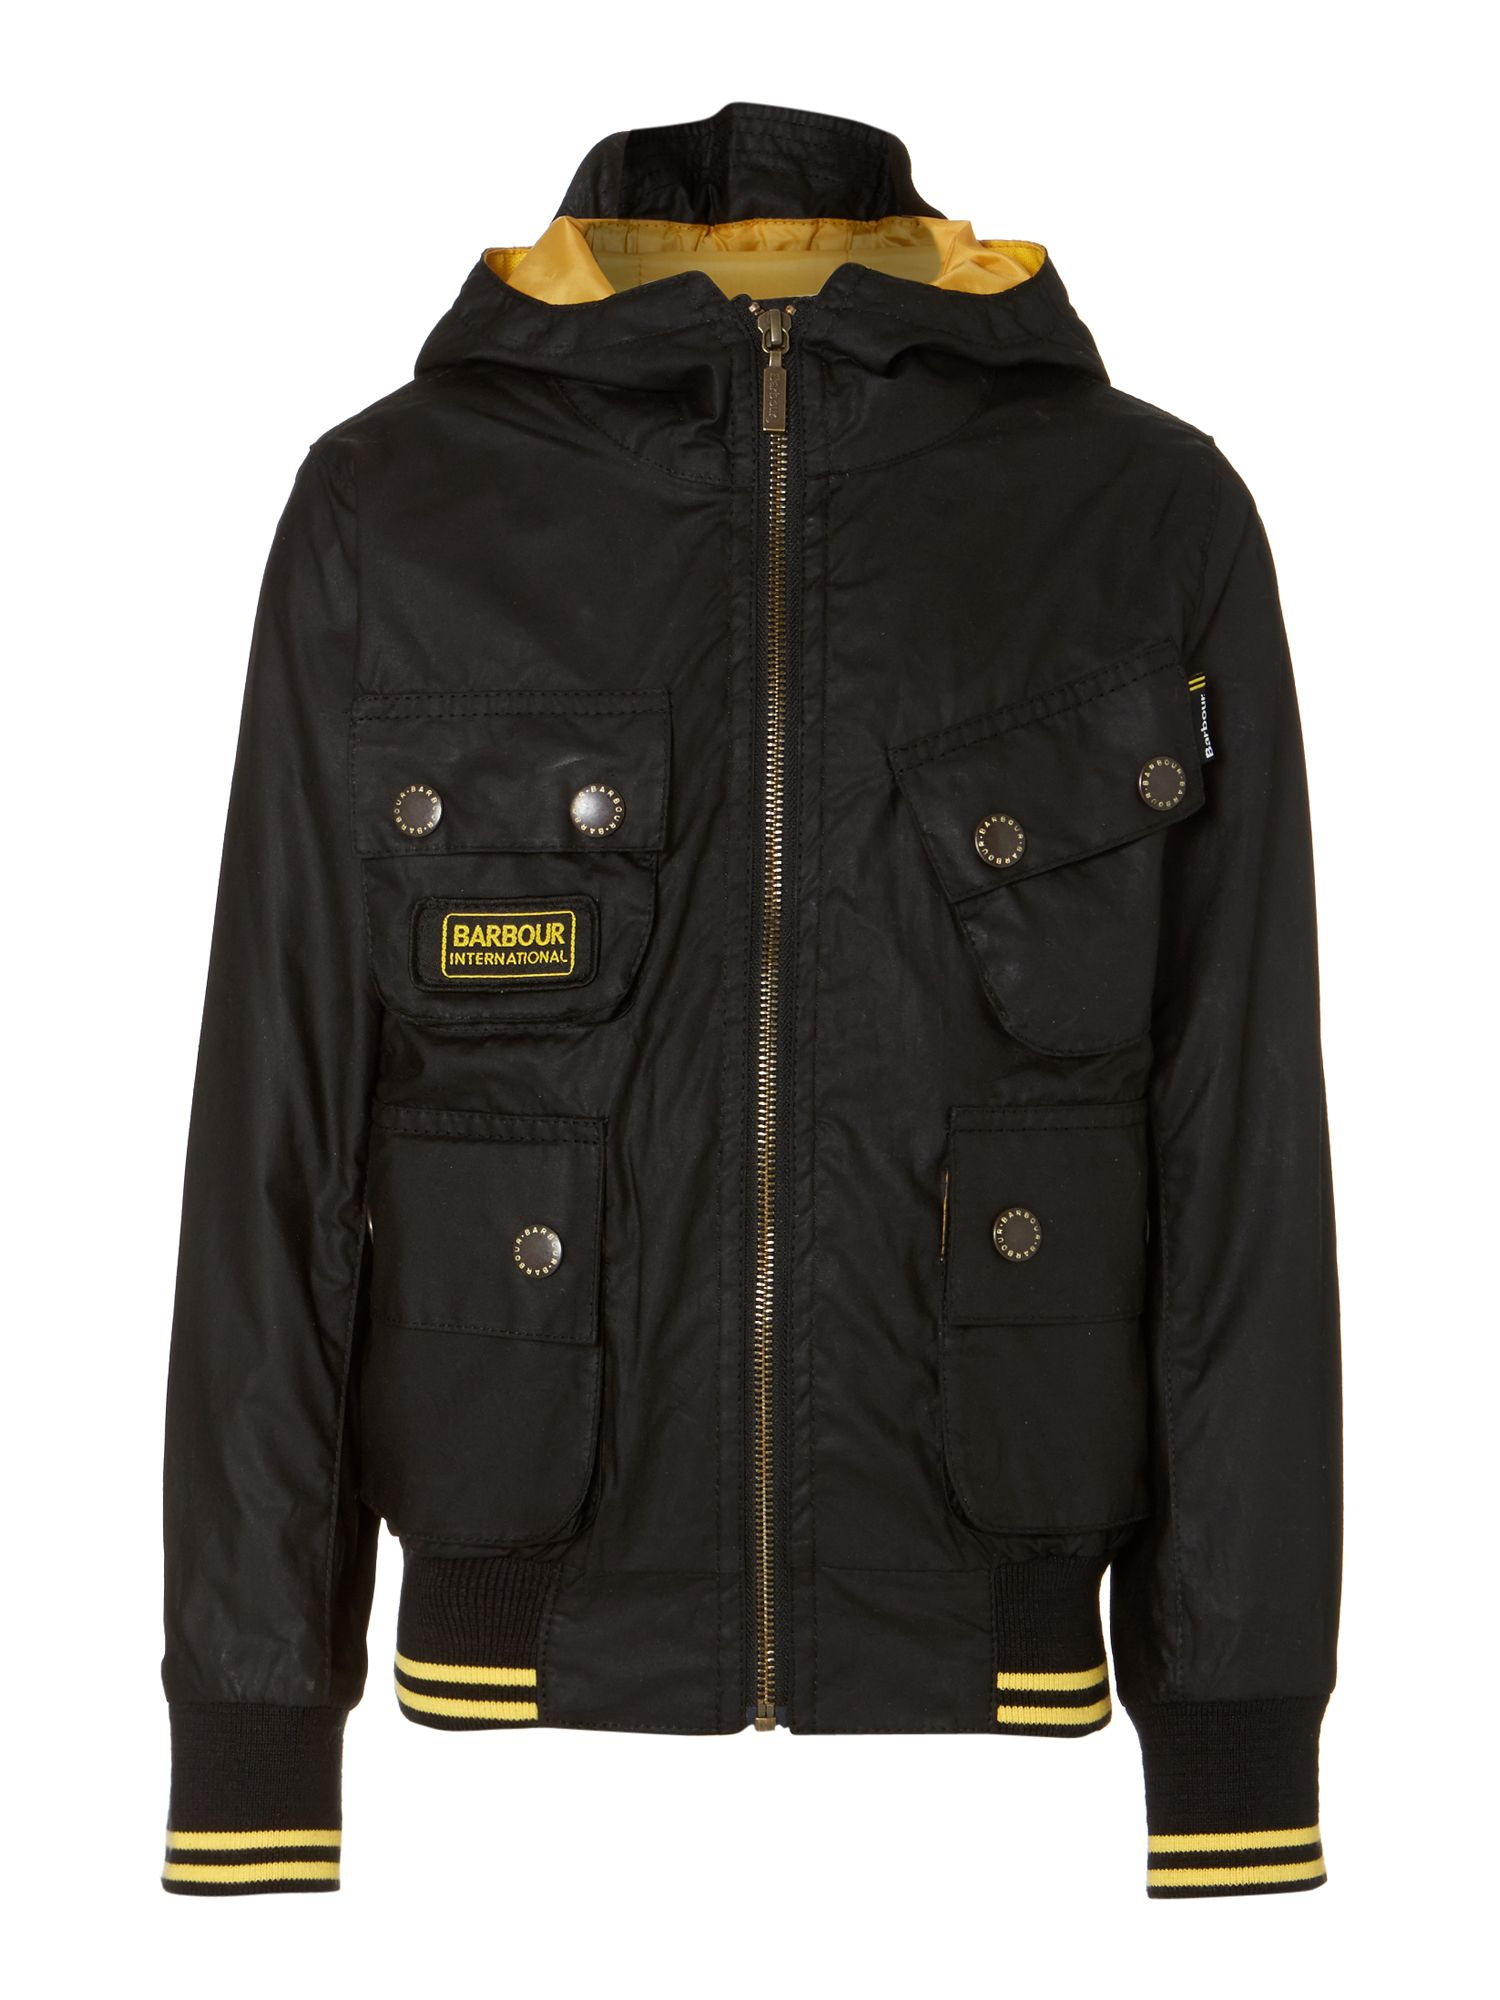 Boy's Glanton International waxed bomber jacket